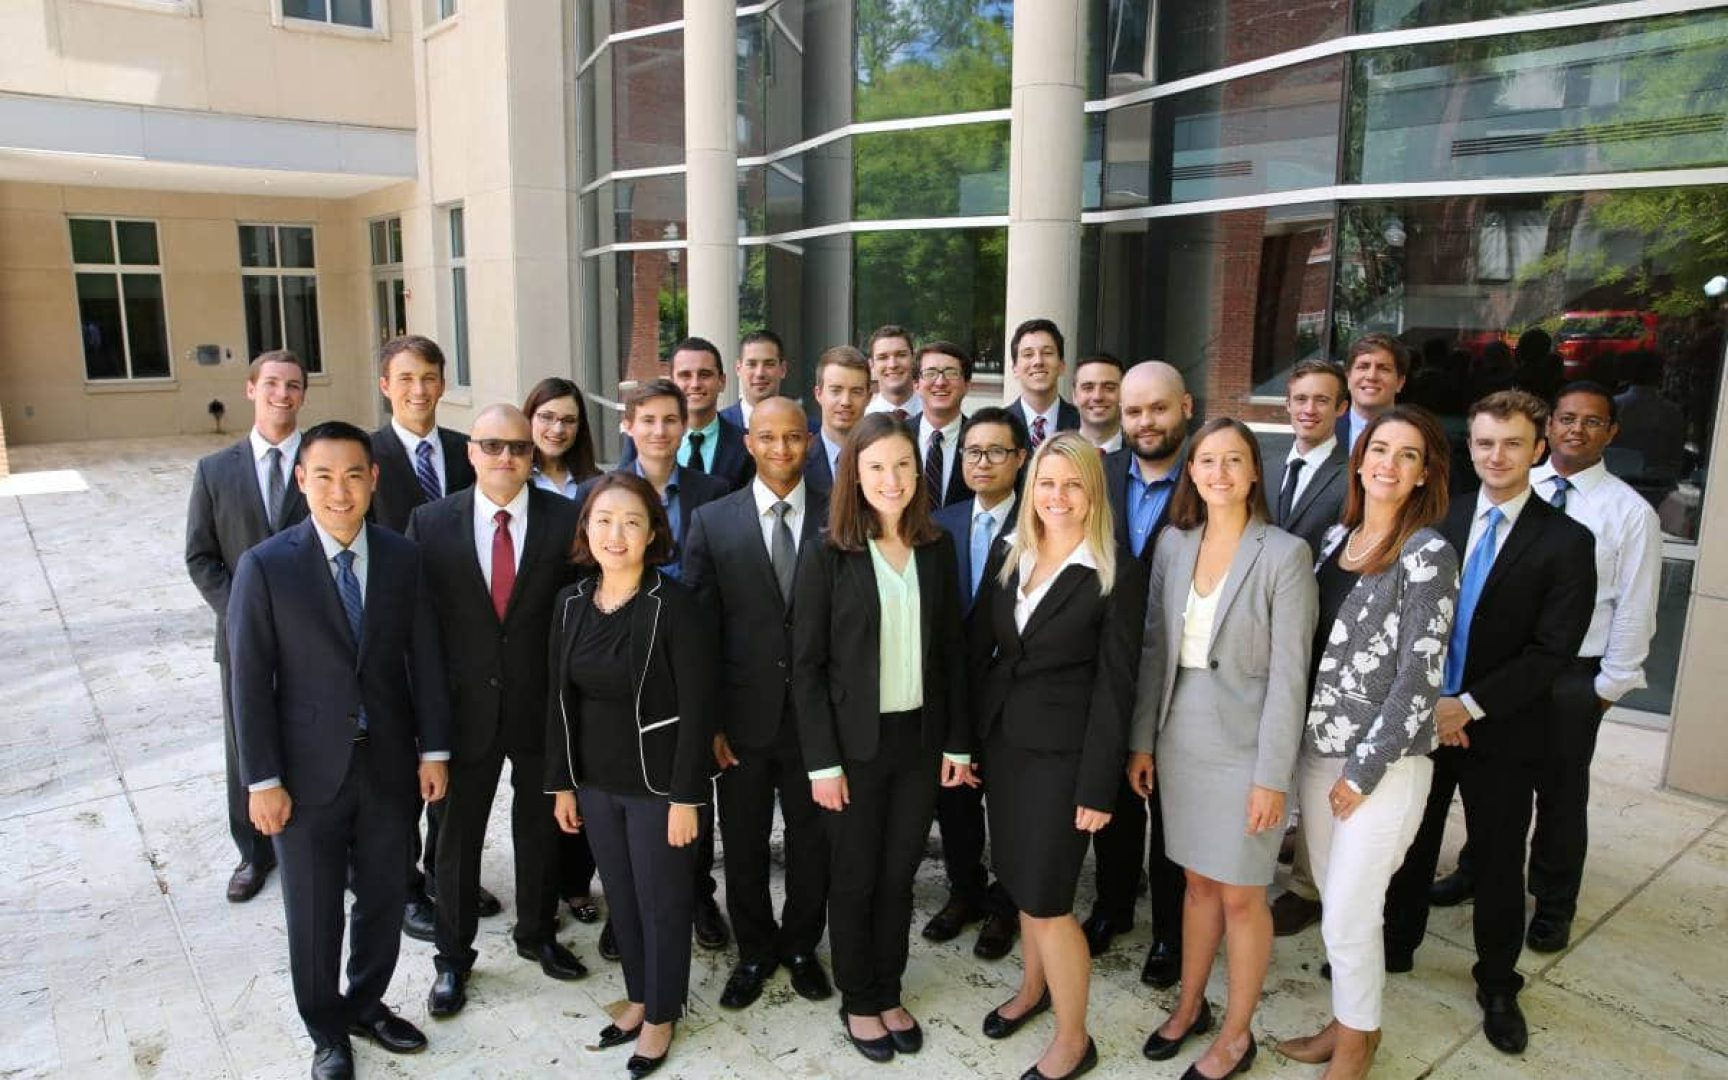 Group of Full-Time MBA students pose for a photo at Hough Hall